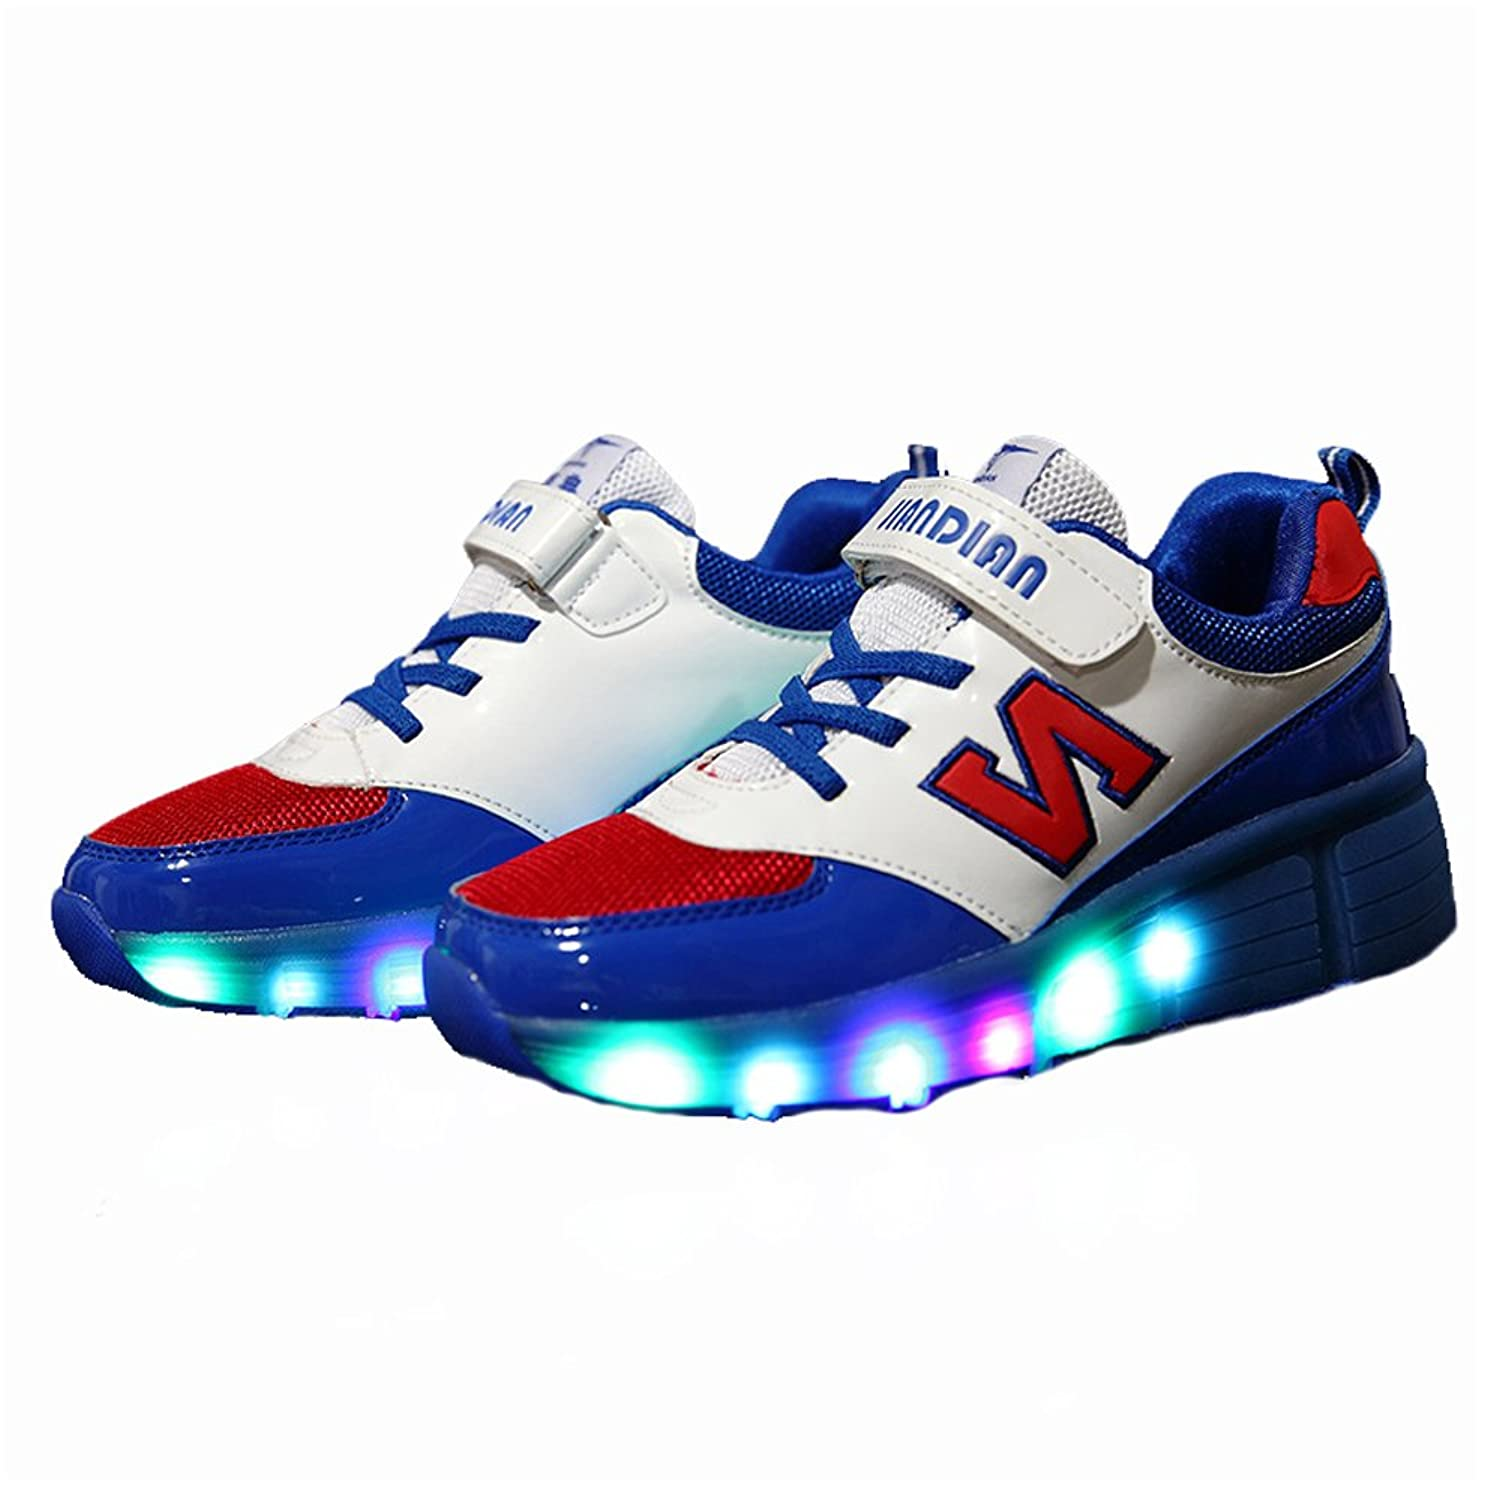 Roller shoes canada - Kids Led Light Shoes Roller Skates With Wheels Flashing Sneakers